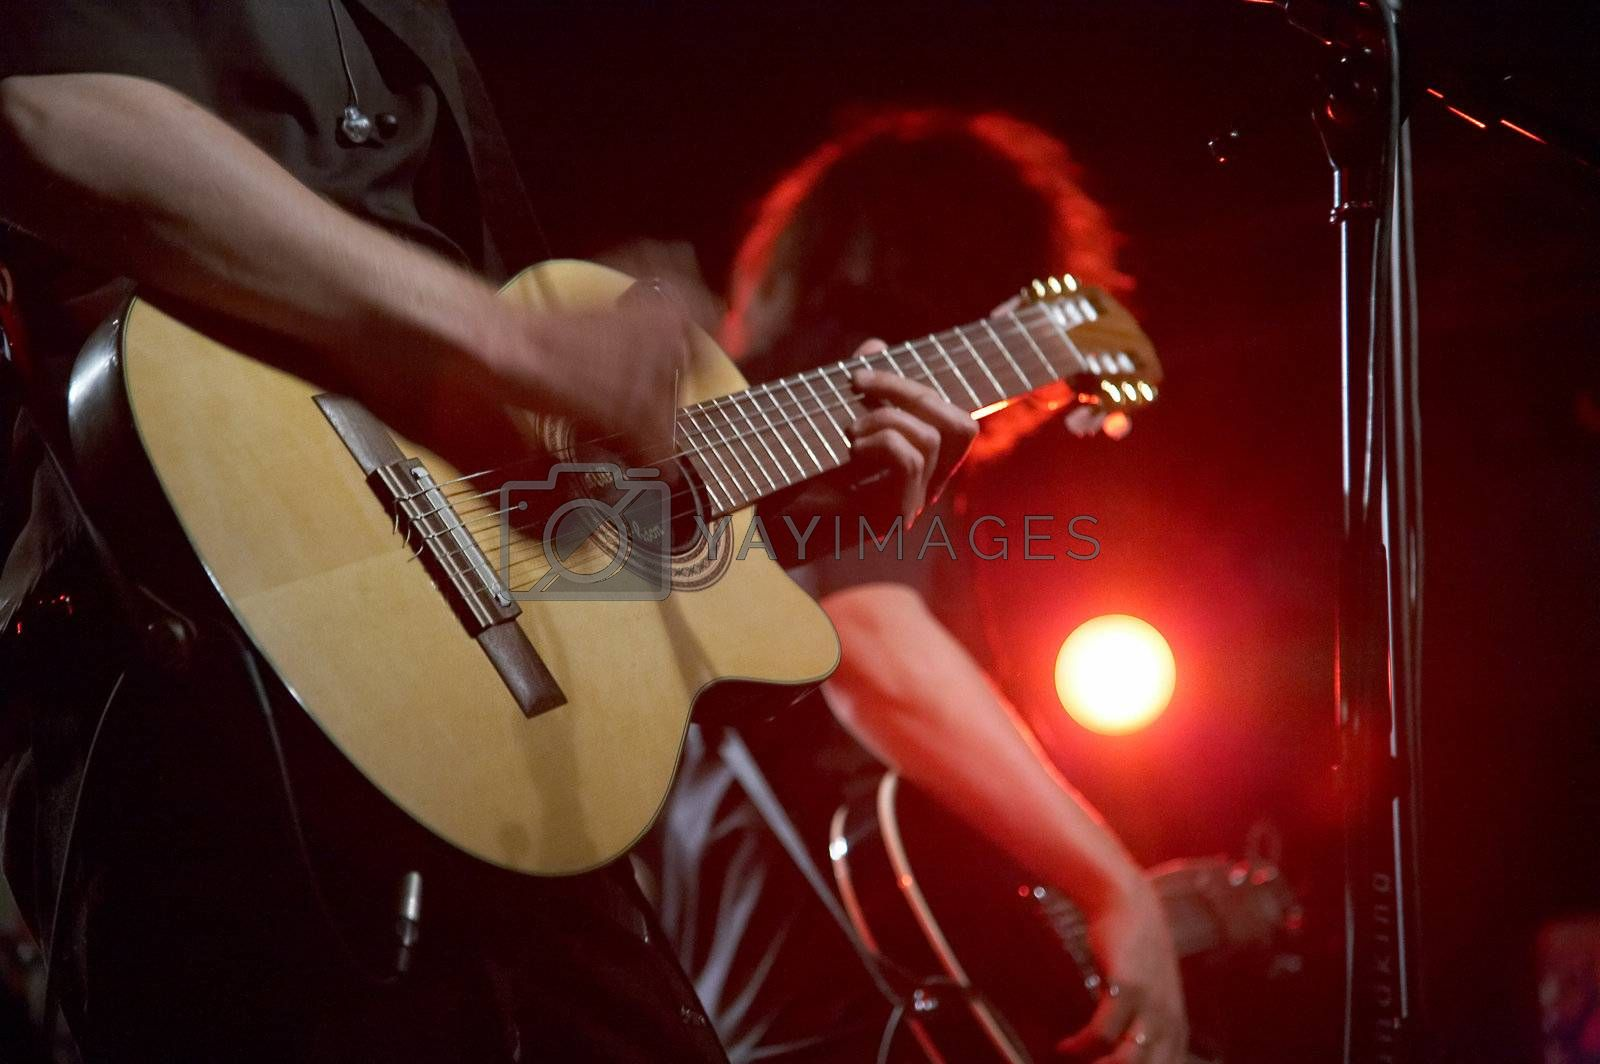 Royalty free image of Two guitarists on live concert by DeusNoxious